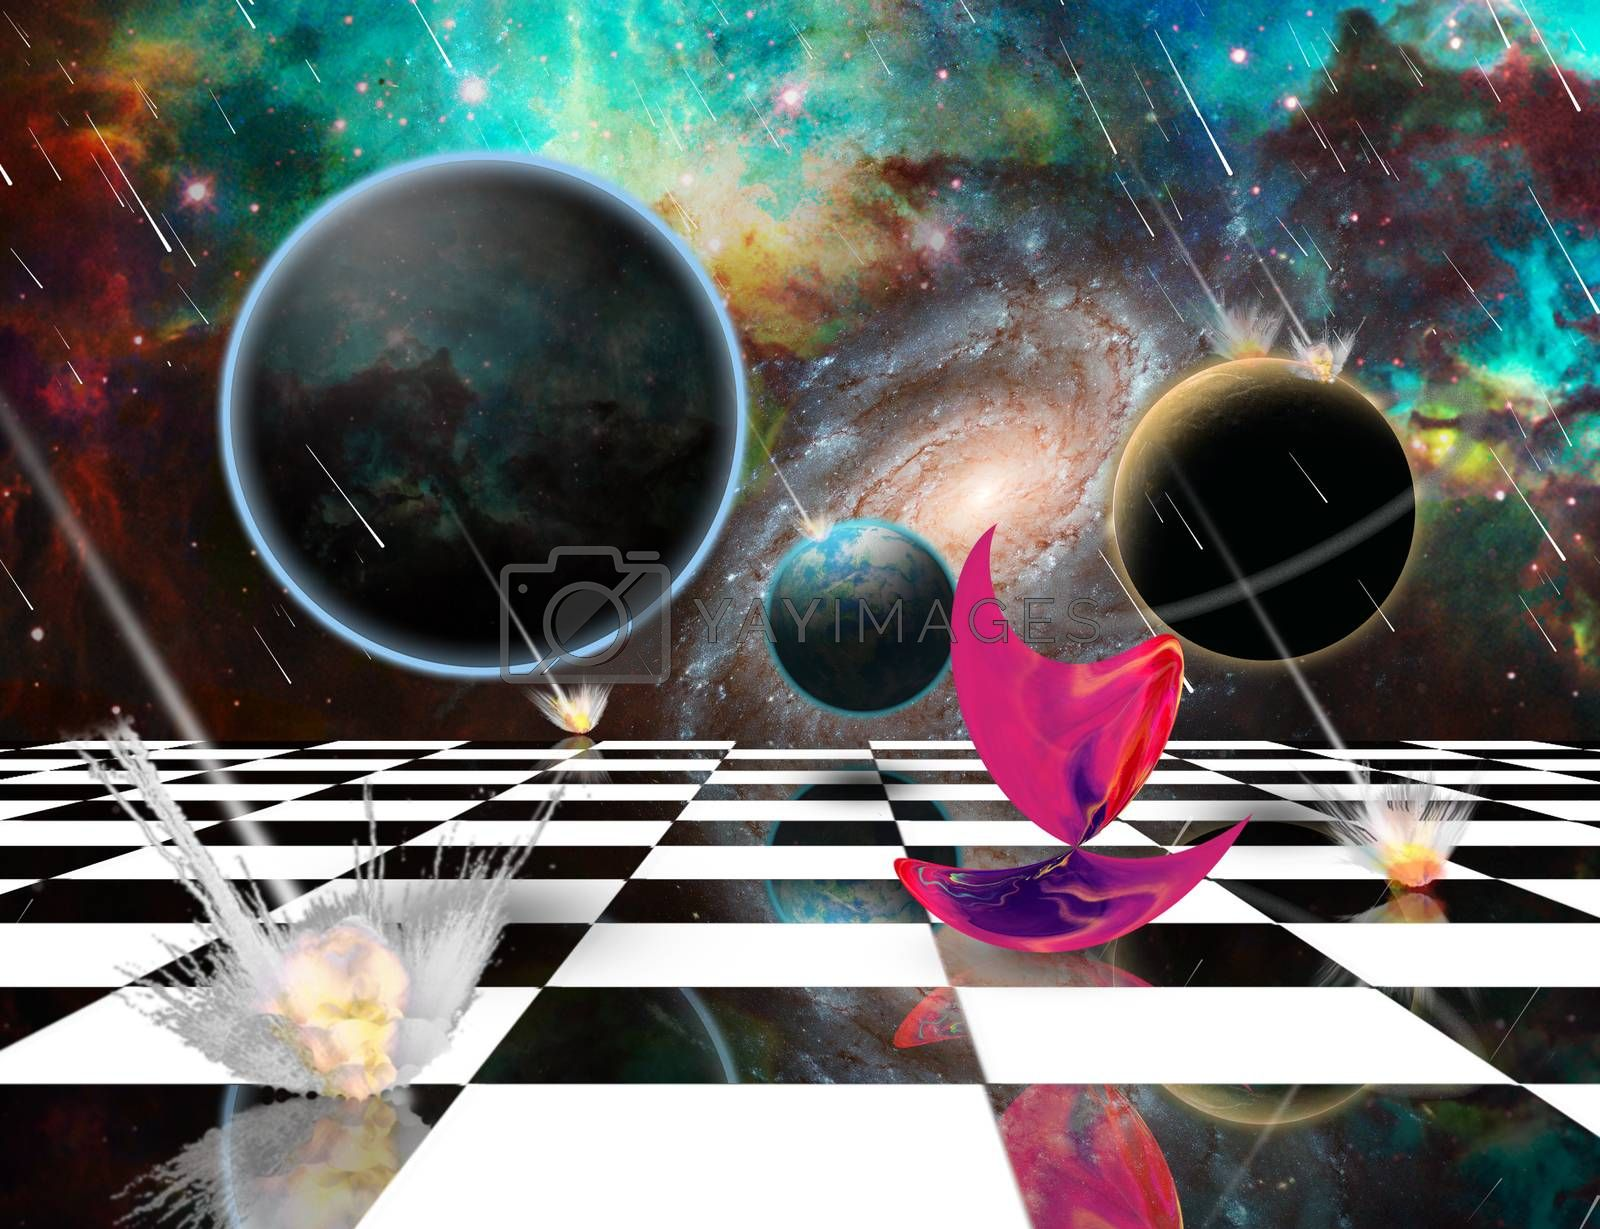 Planetary Armageddon. Massive meteorite - asteroid shower destroy planets. Mystic Pink Matter on chessboard. 3D rendering